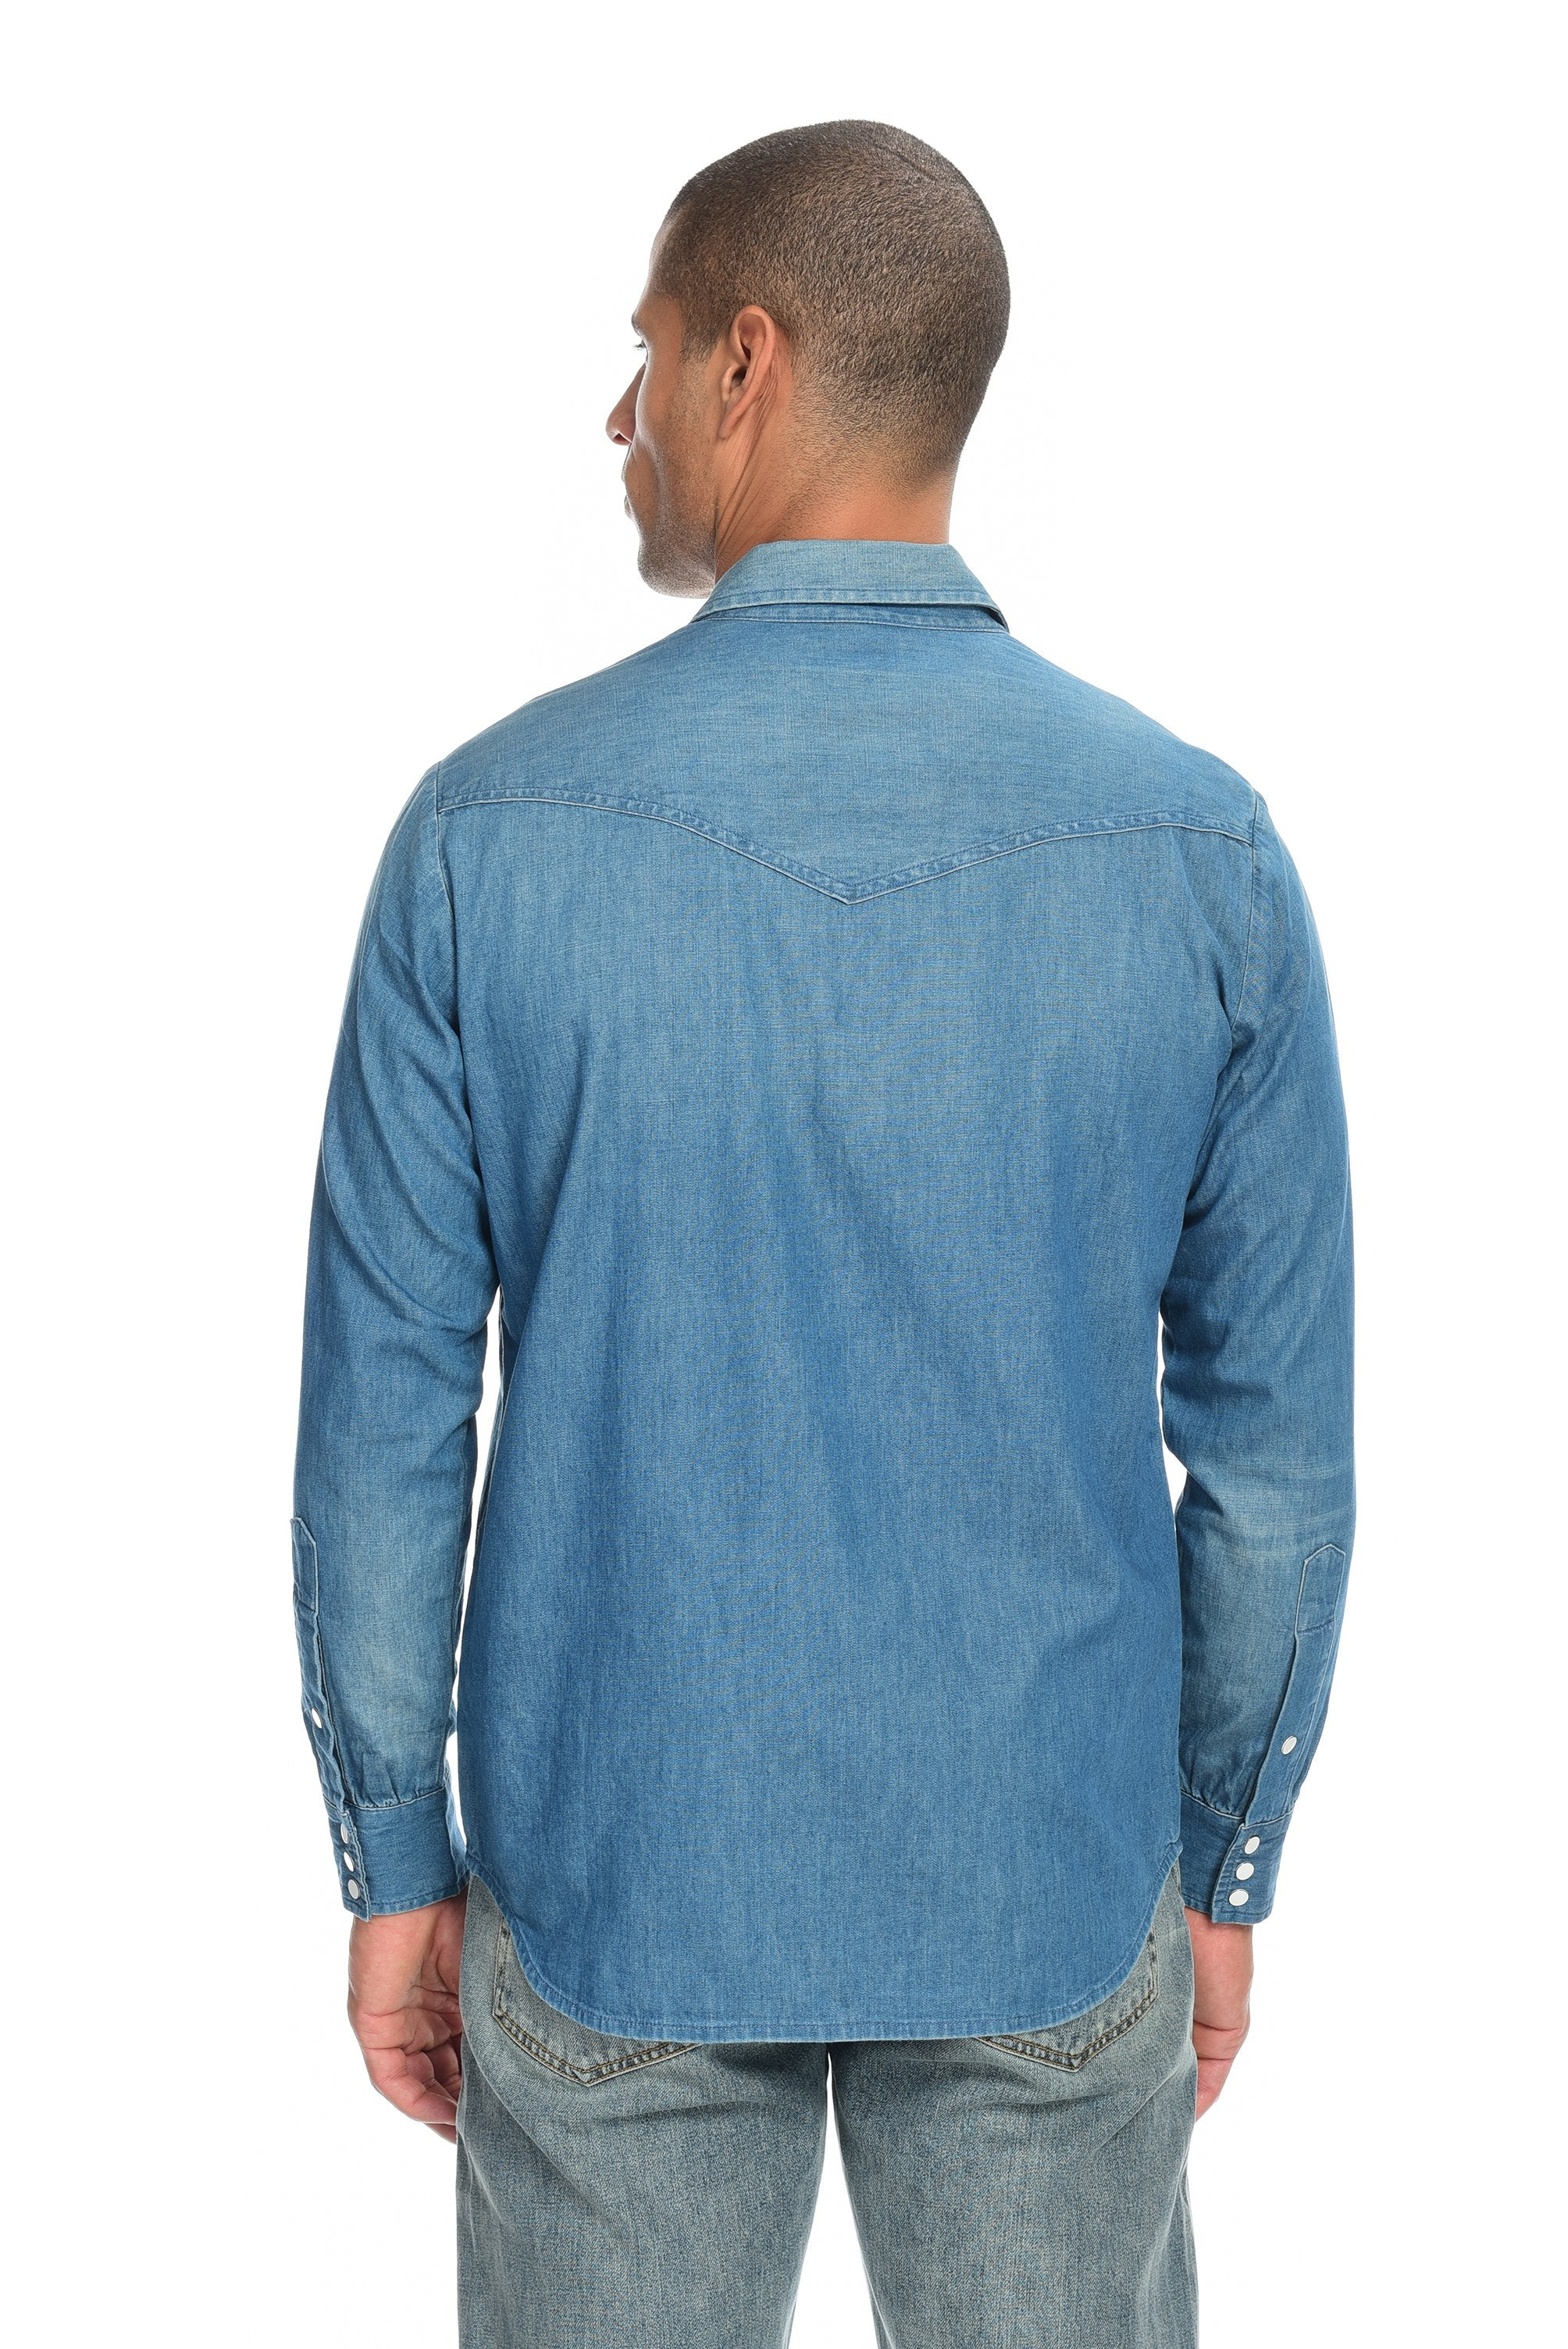 Denim Shirt Men's